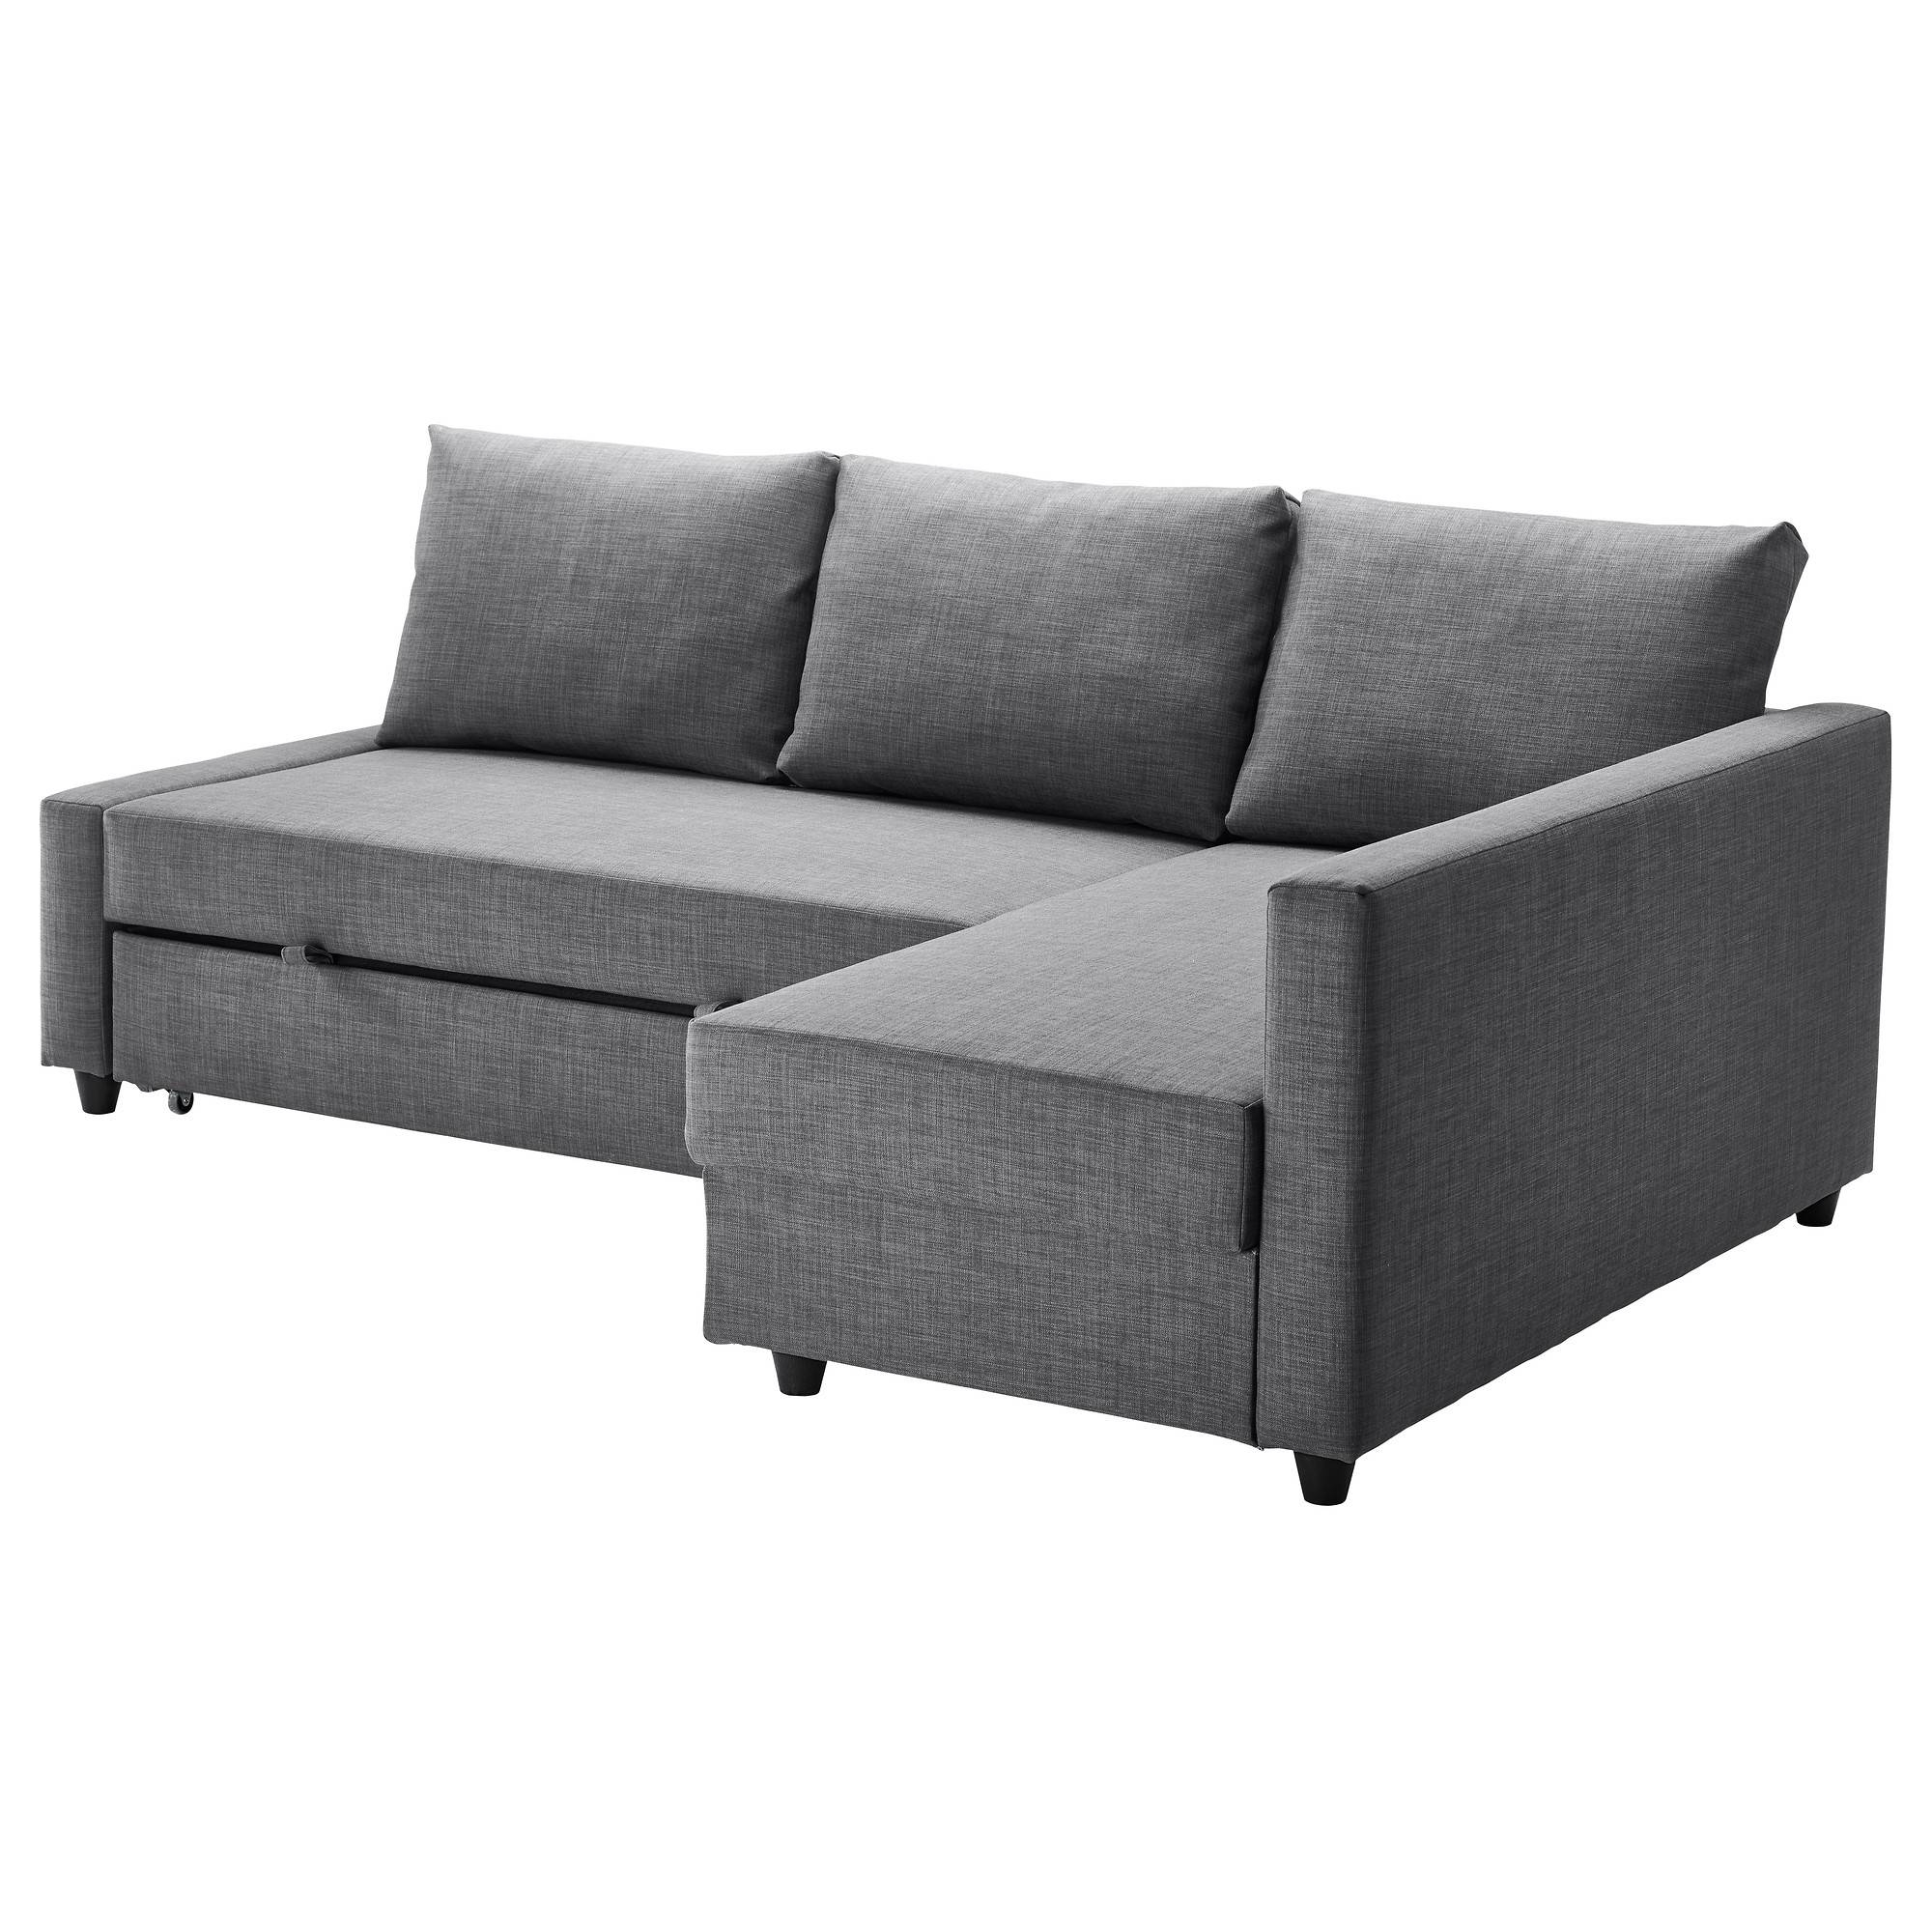 Friheten Corner Sofa Bed With Storage – Skiftebo Dark Gray – Ikea Regarding Sofa Beds (View 5 of 15)